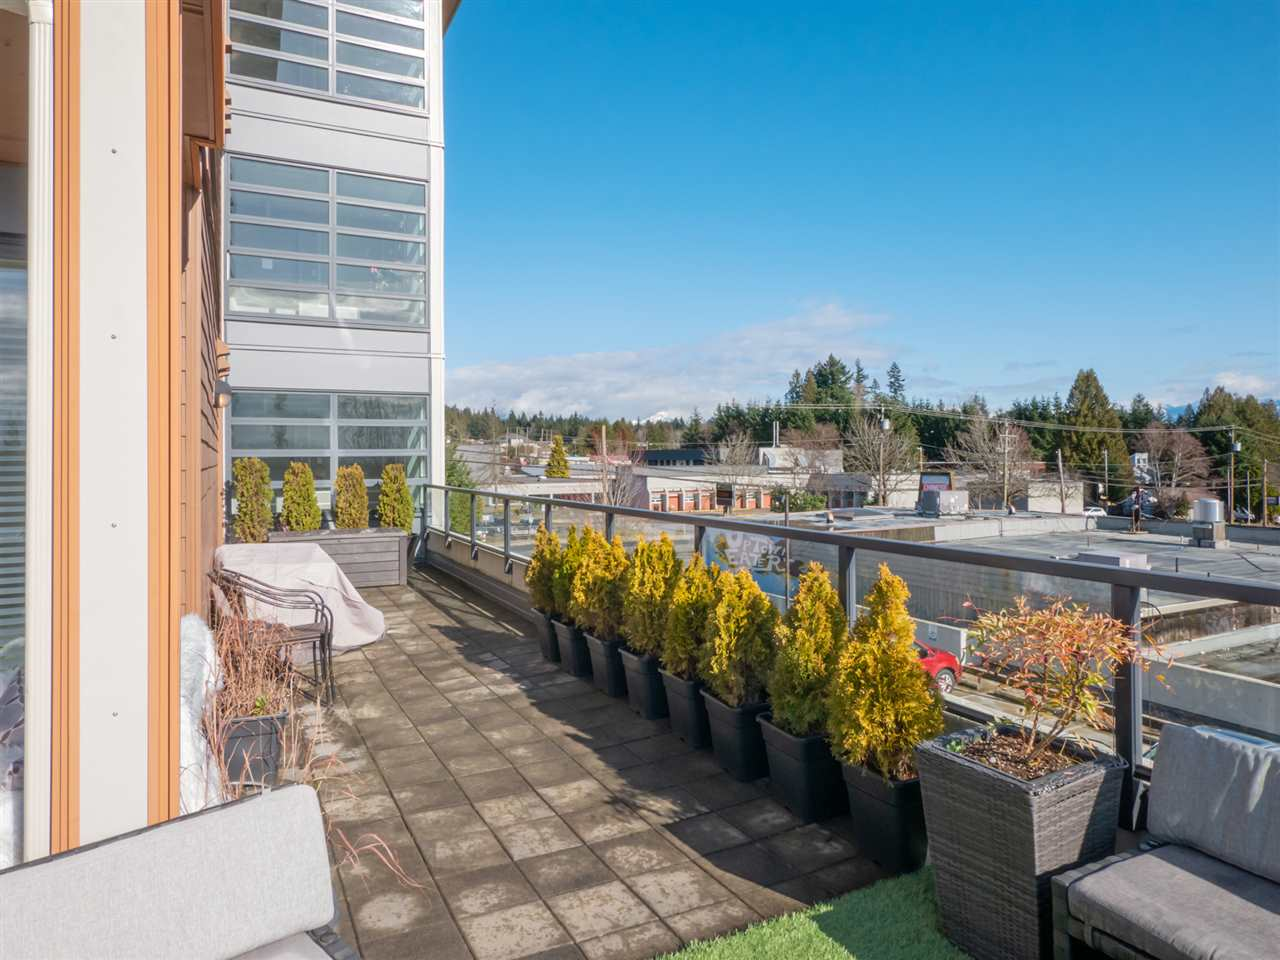 210 210 875 GIBSONS WAY - Gibsons & Area Apartment/Condo for sale, 2 Bedrooms (R2542139) - #30